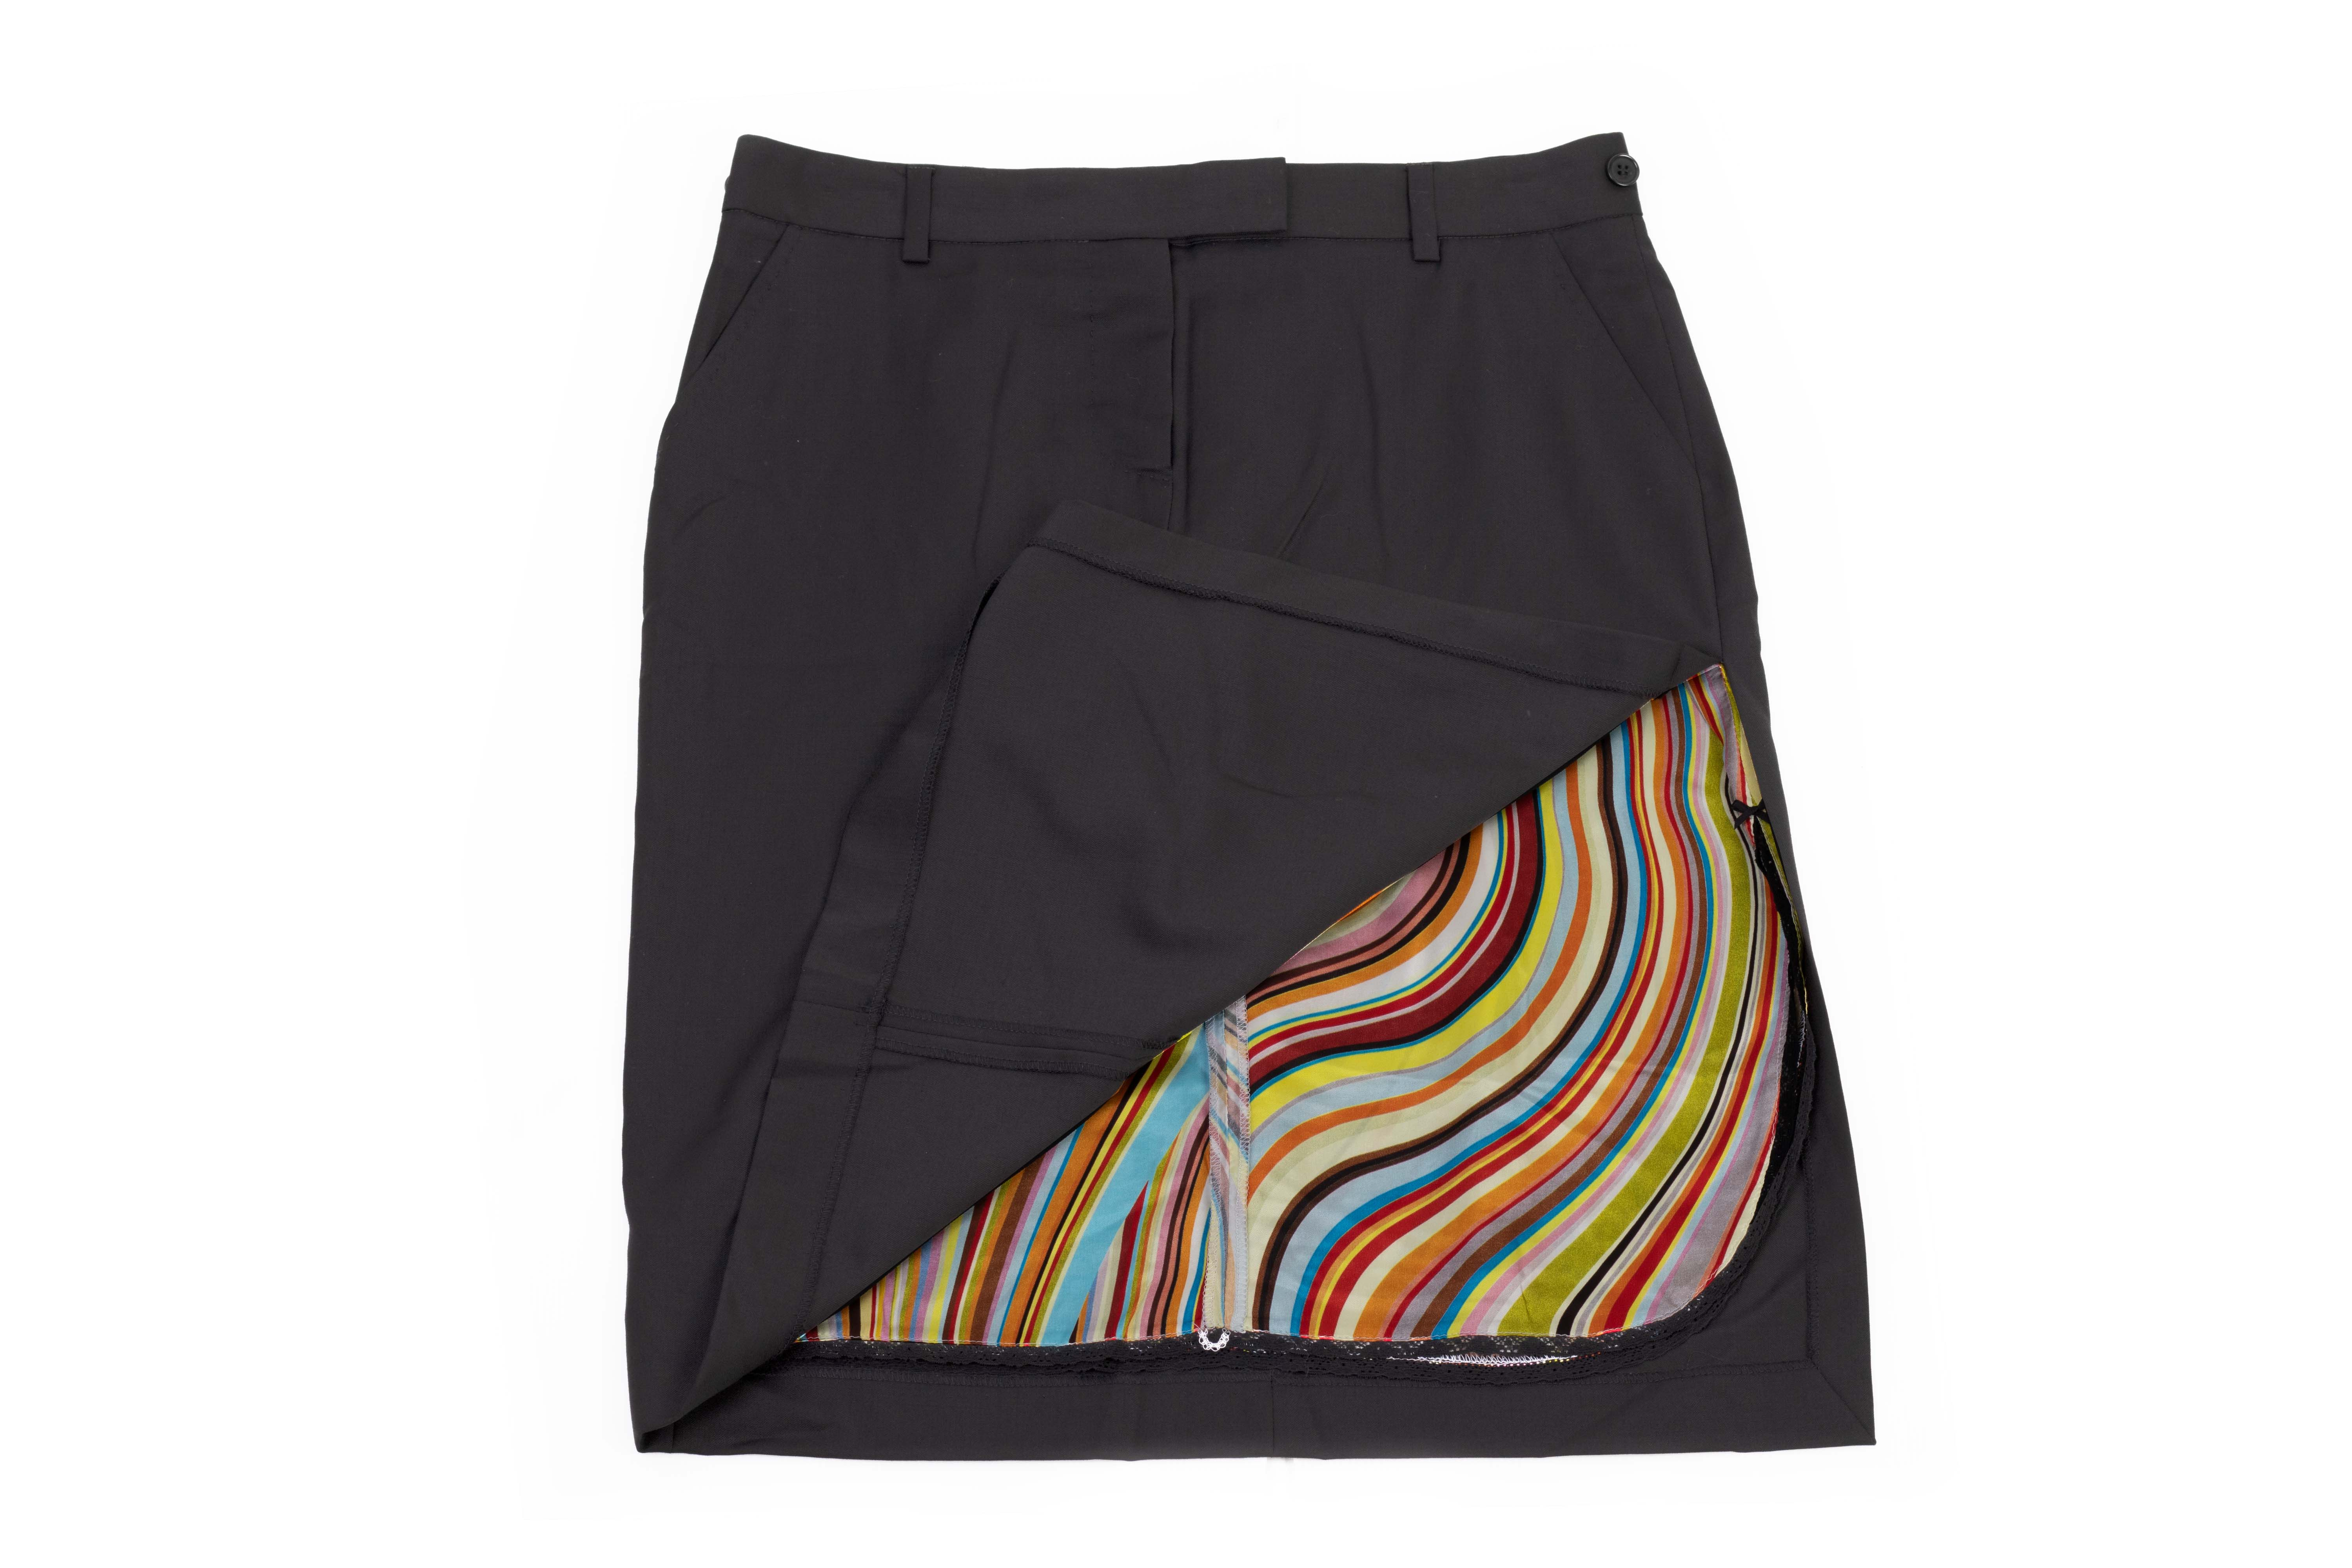 A PAUL SMITH BLACK SKIRT - Image 2 of 3